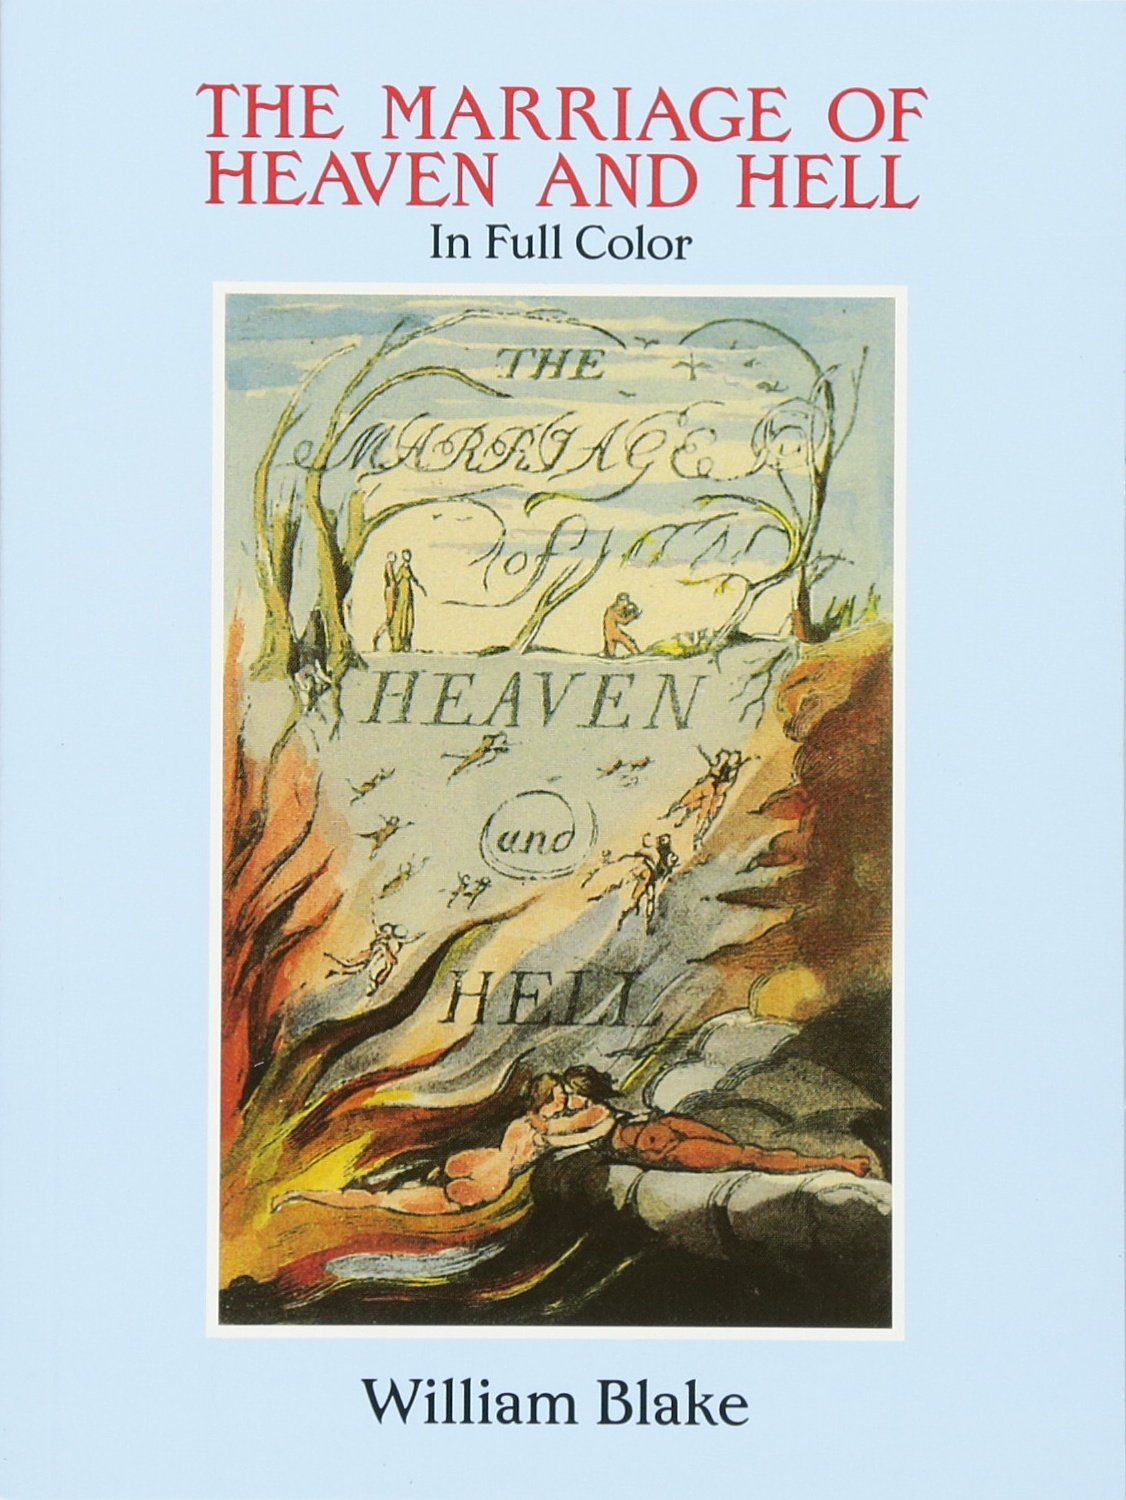 The marriage of heaven and hell a facsimile in full color dover the marriage of heaven and hell a facsimile in full color dover fine art history of art william blake 0800759281220 amazon books biocorpaavc Choice Image